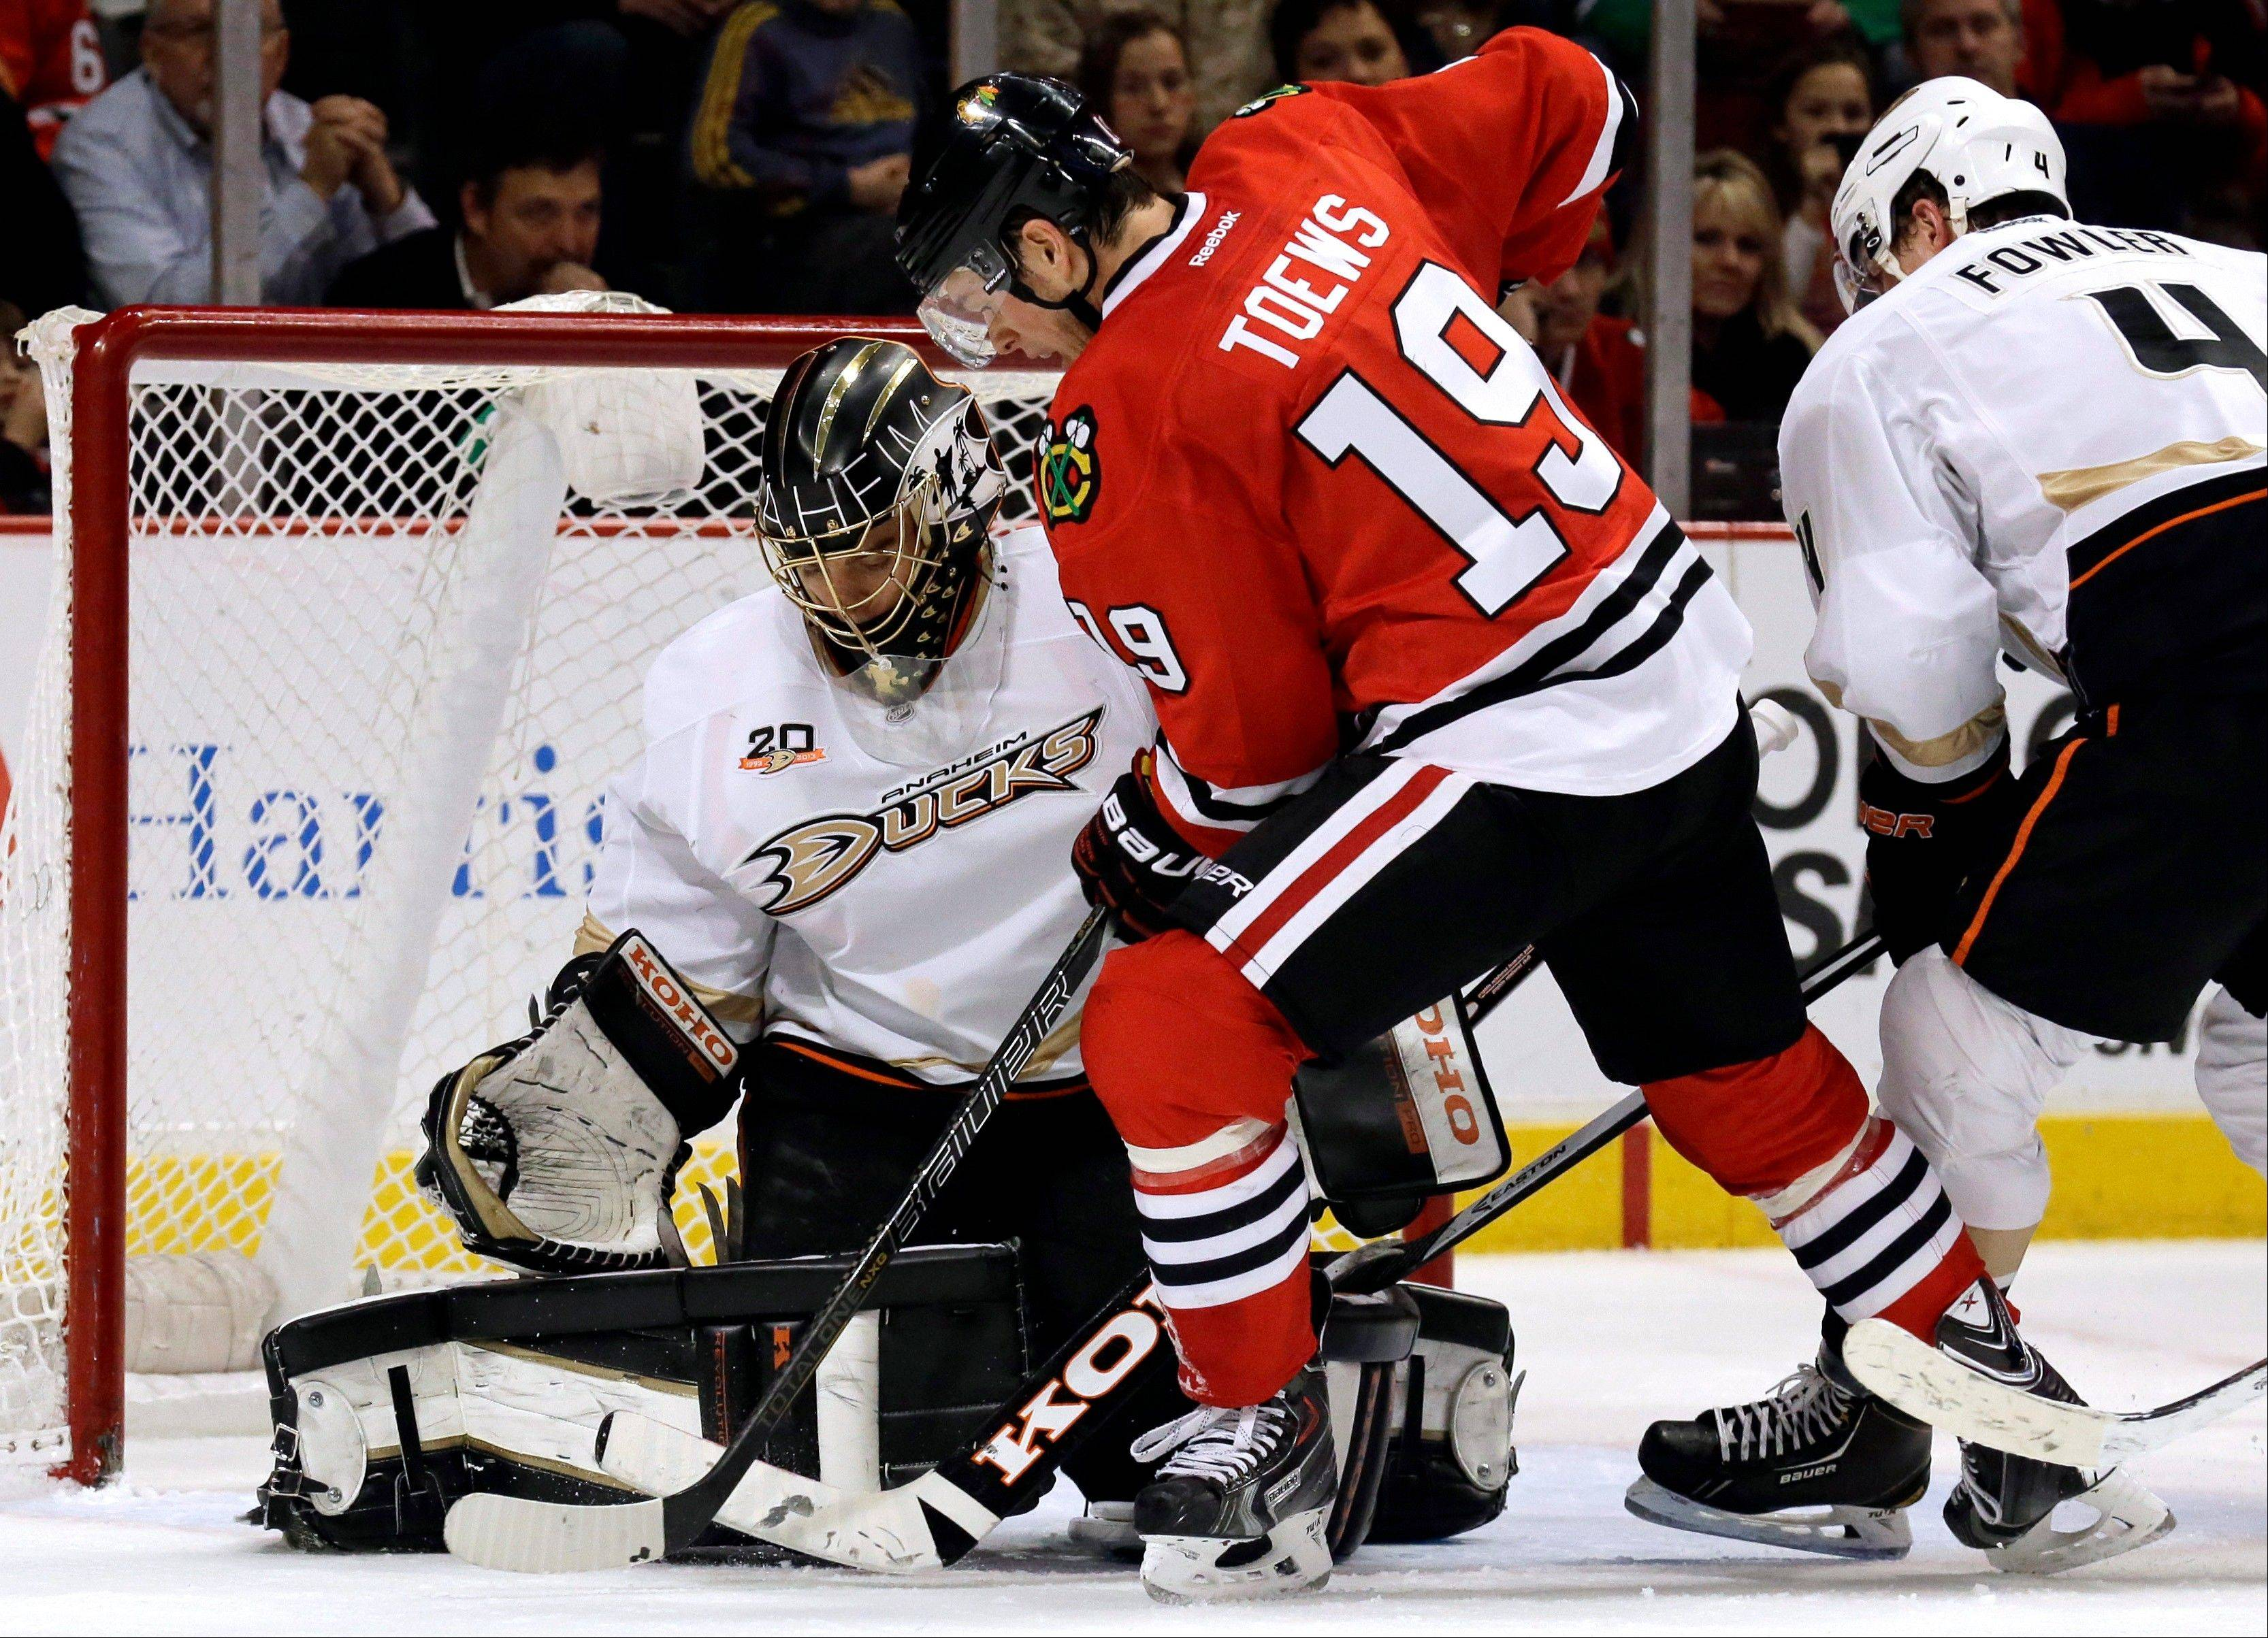 The Blackhawks' Jonathan Toews puts pressure on Ducks goalie Jonas Hiller during the second period Friday at the United Center.